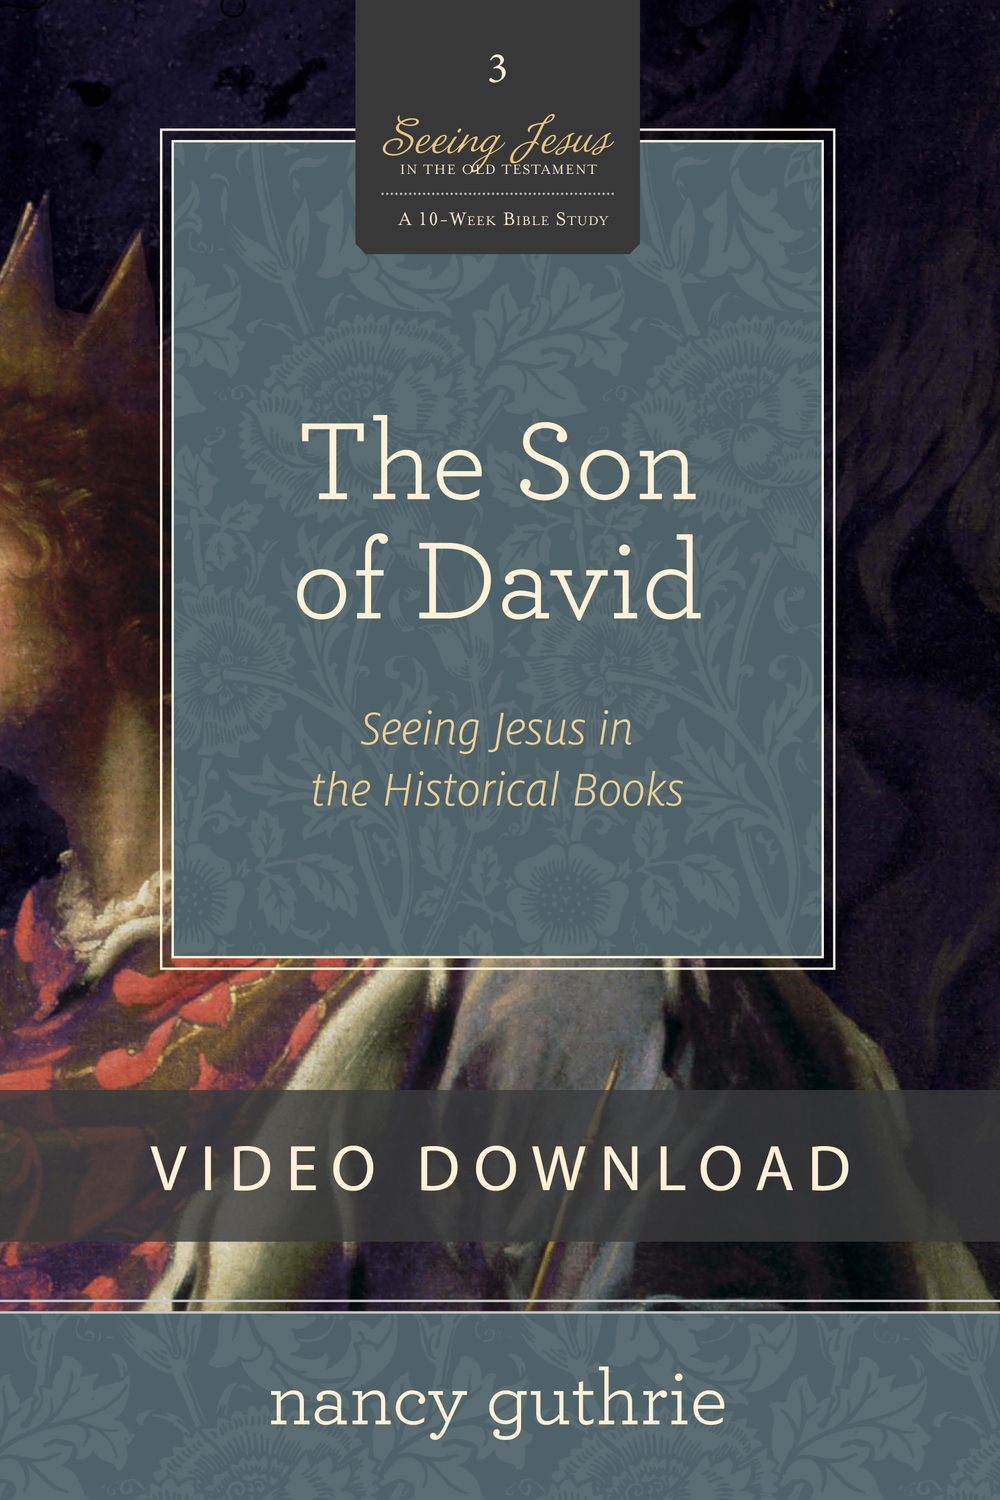 The Son of David Video Session 9 Download